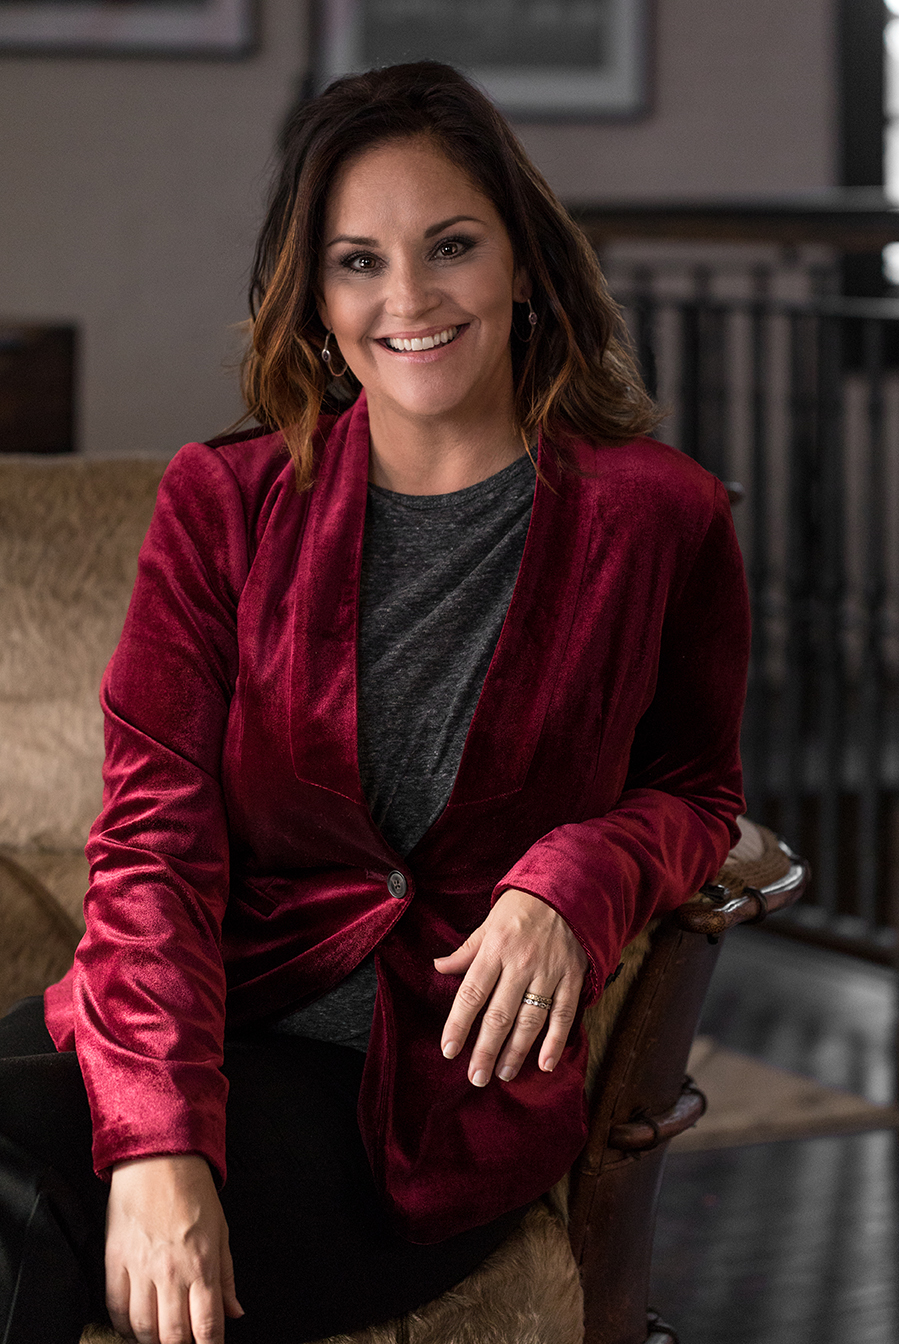 keely-corona-fredericksburg-realty-real-estate-agent-texas-hill-country.jpg